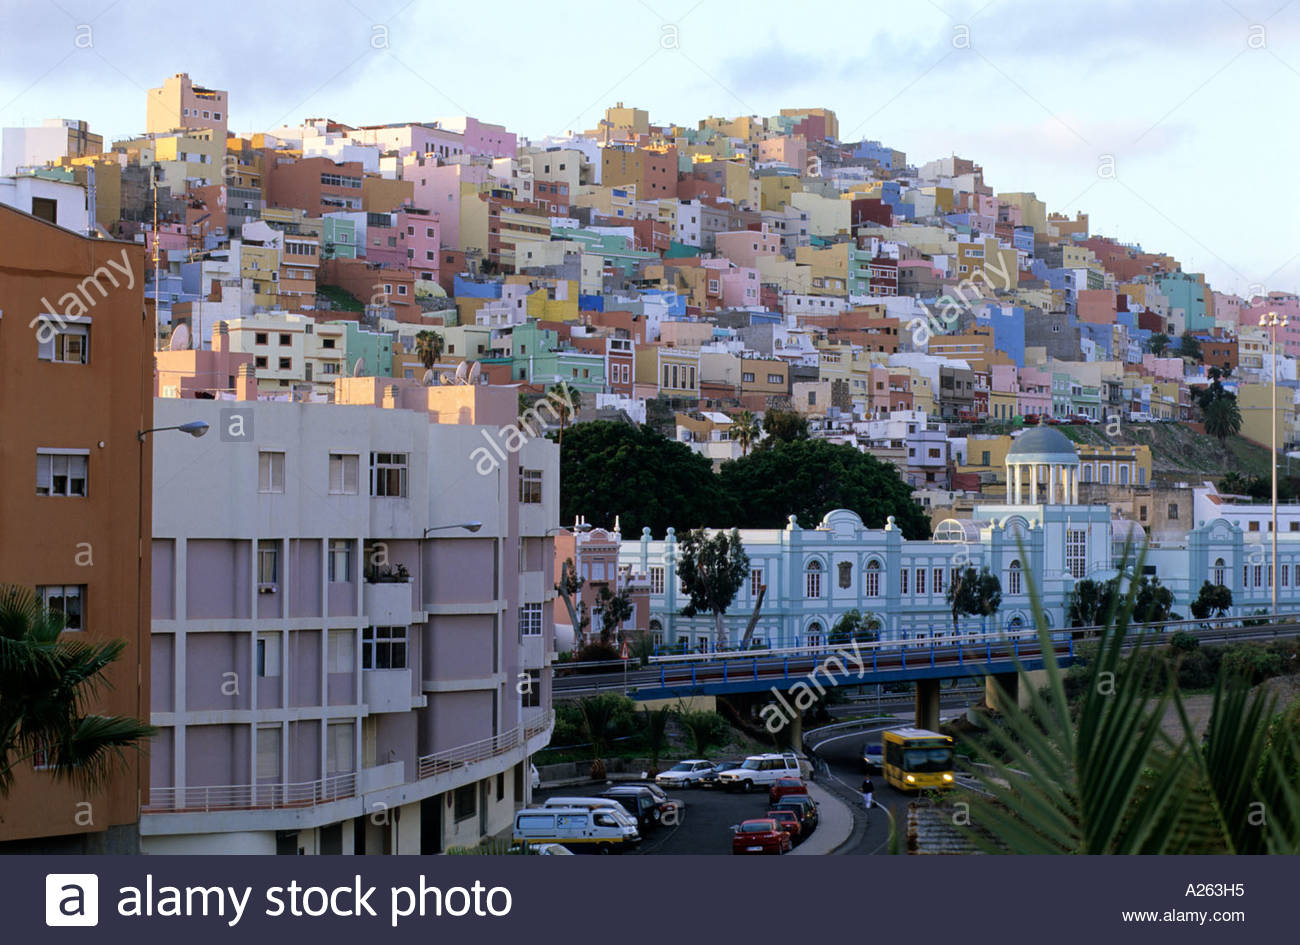 Pastel coloured houses las palmas gran canaria canary - Houses in gran canaria ...